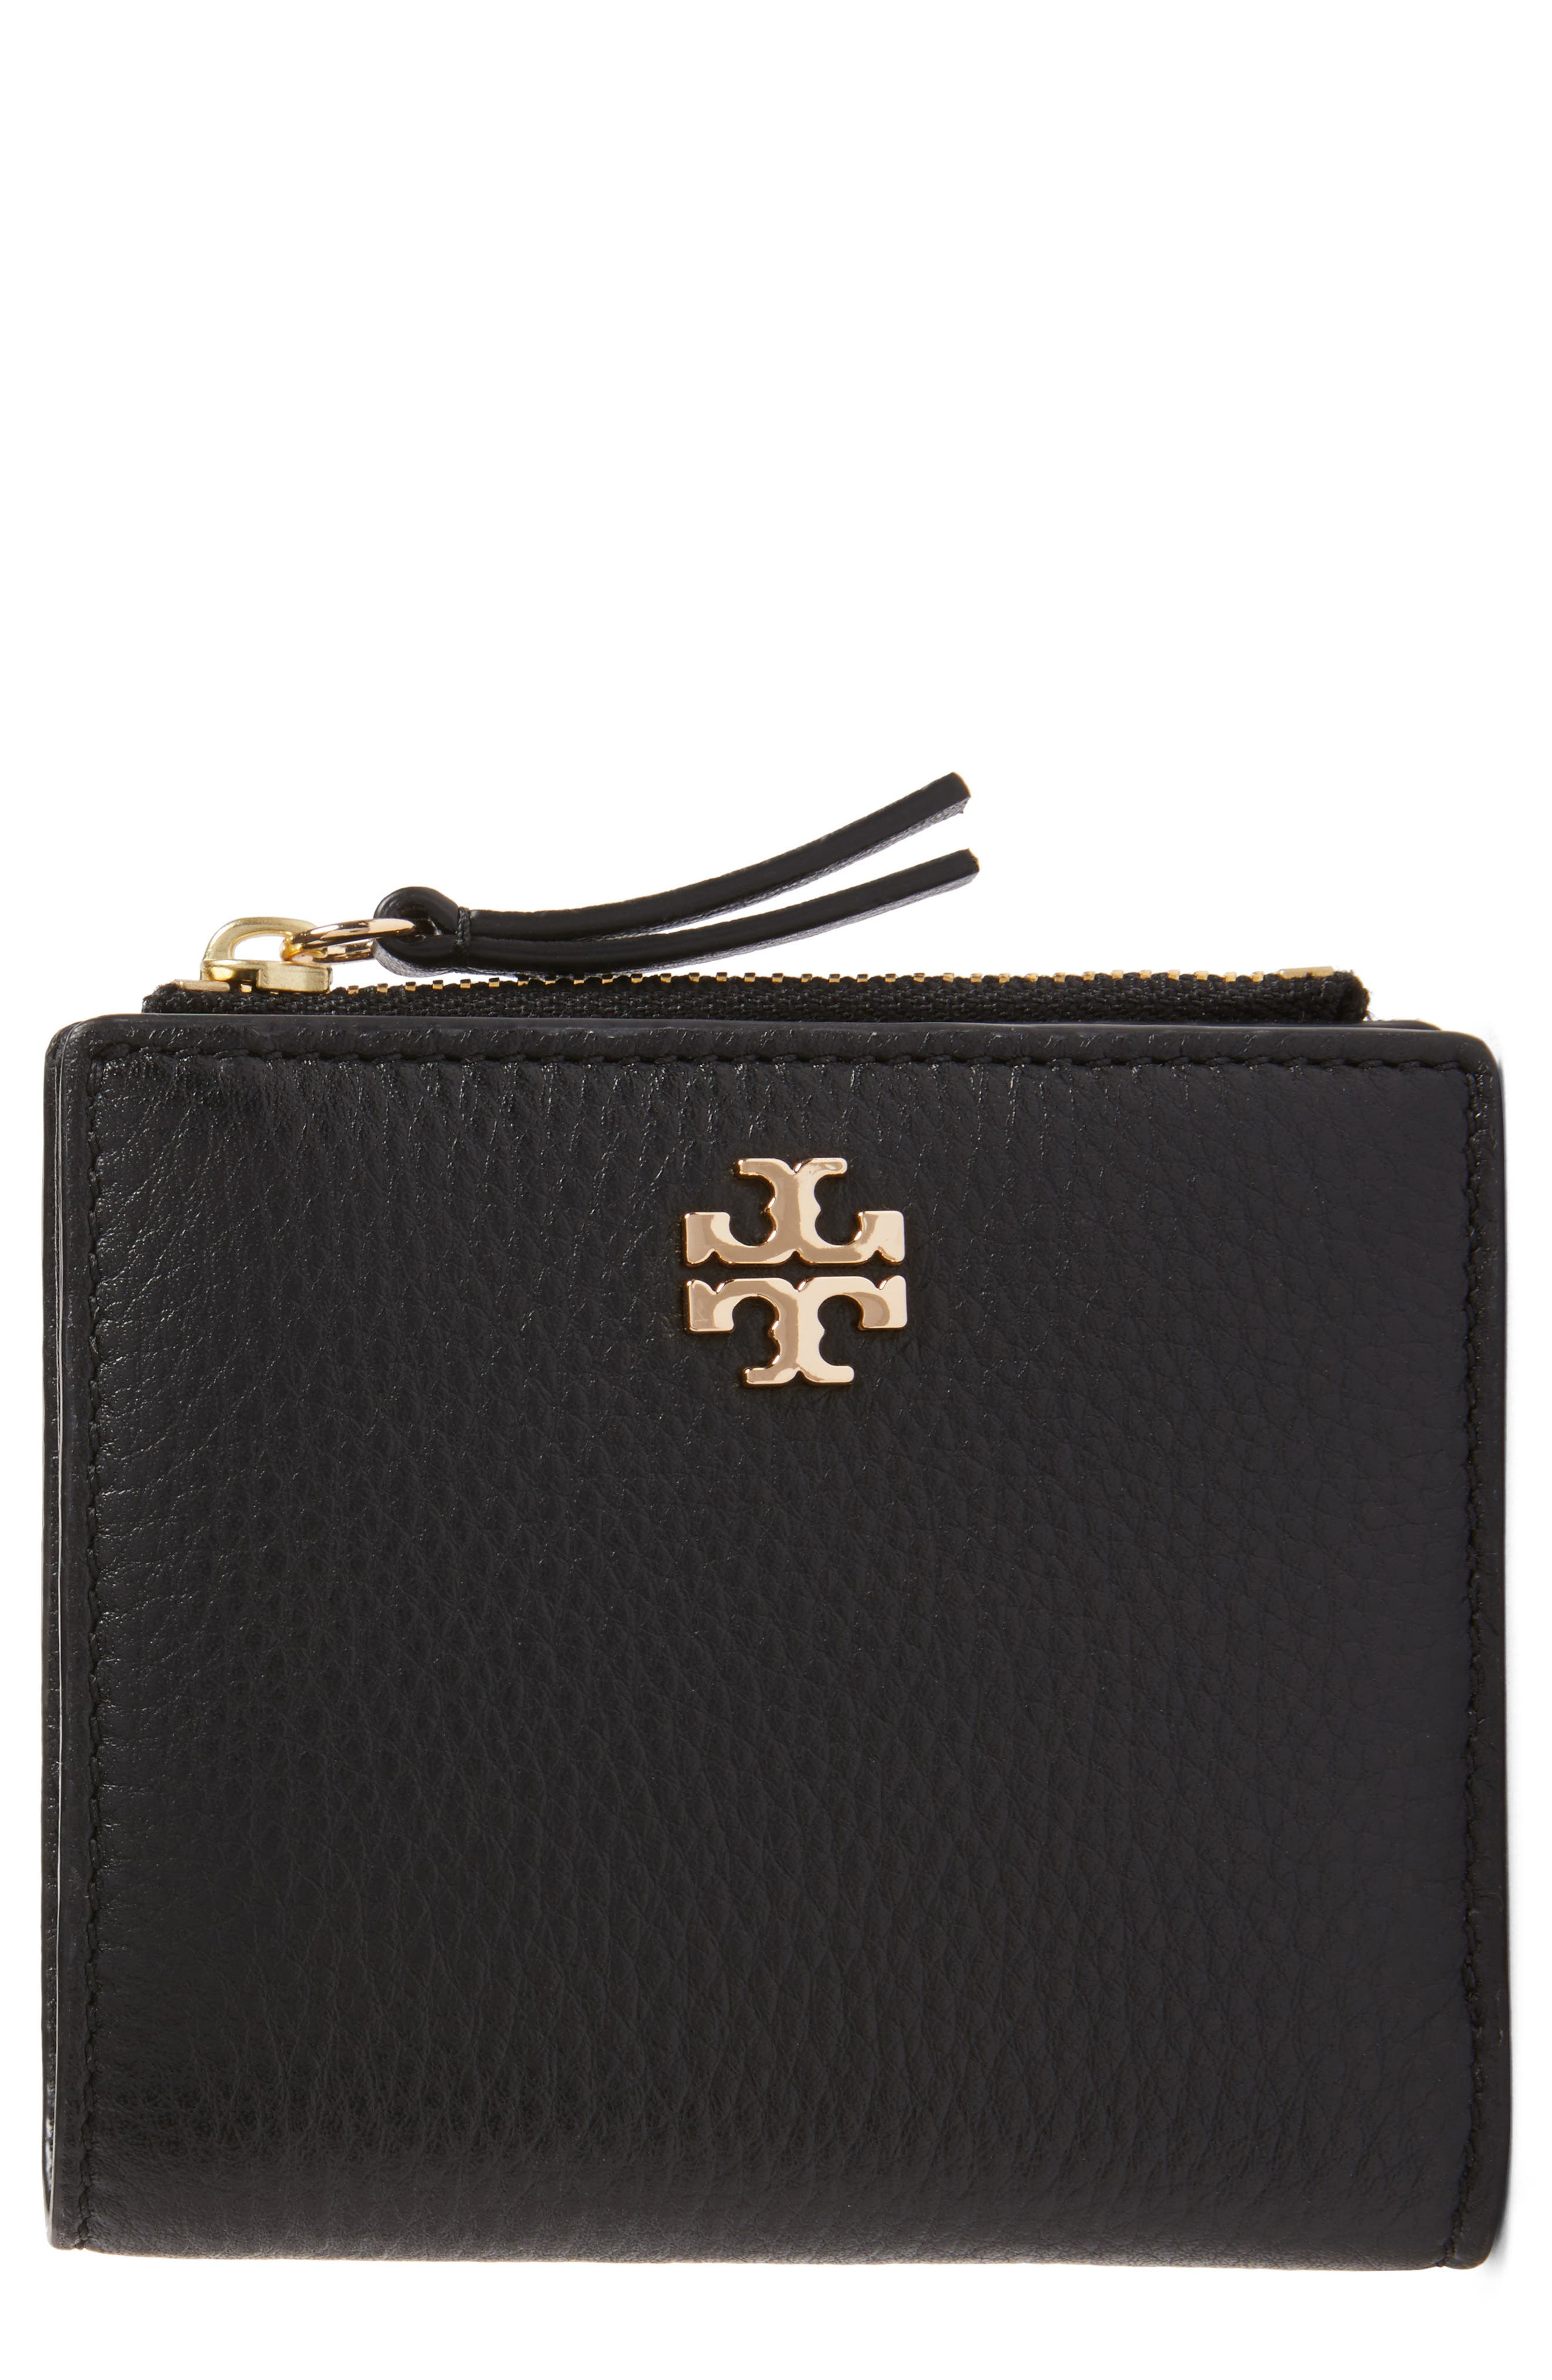 Tory Burch Mini Frida Leather Wallet (Nordstrom Exclusive)